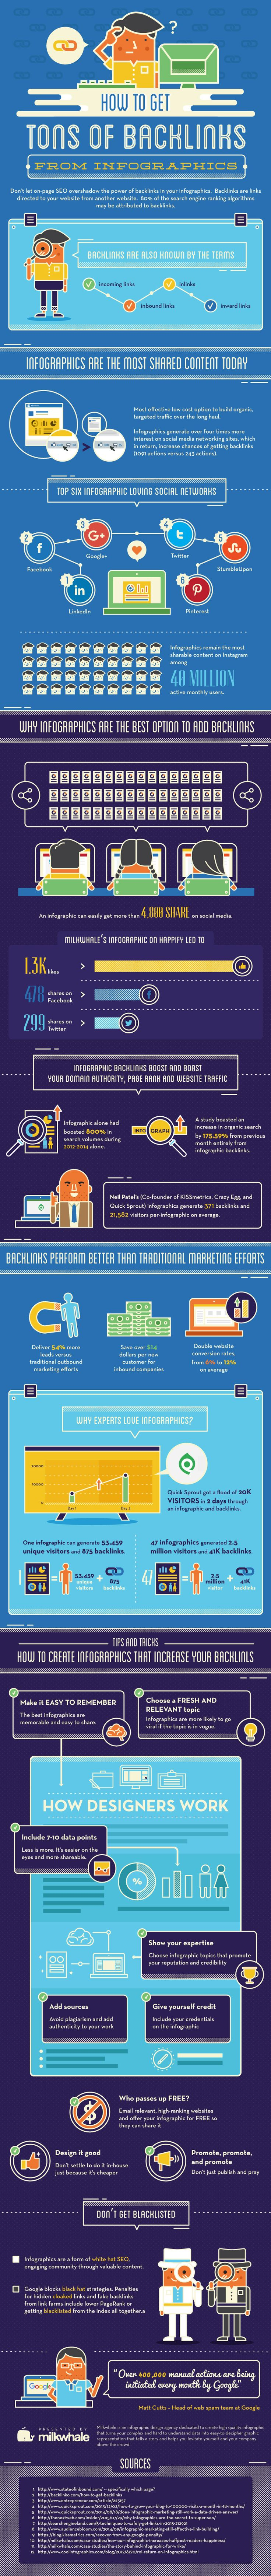 How To Get Tons Of Backlinks From Infographics - #infographic